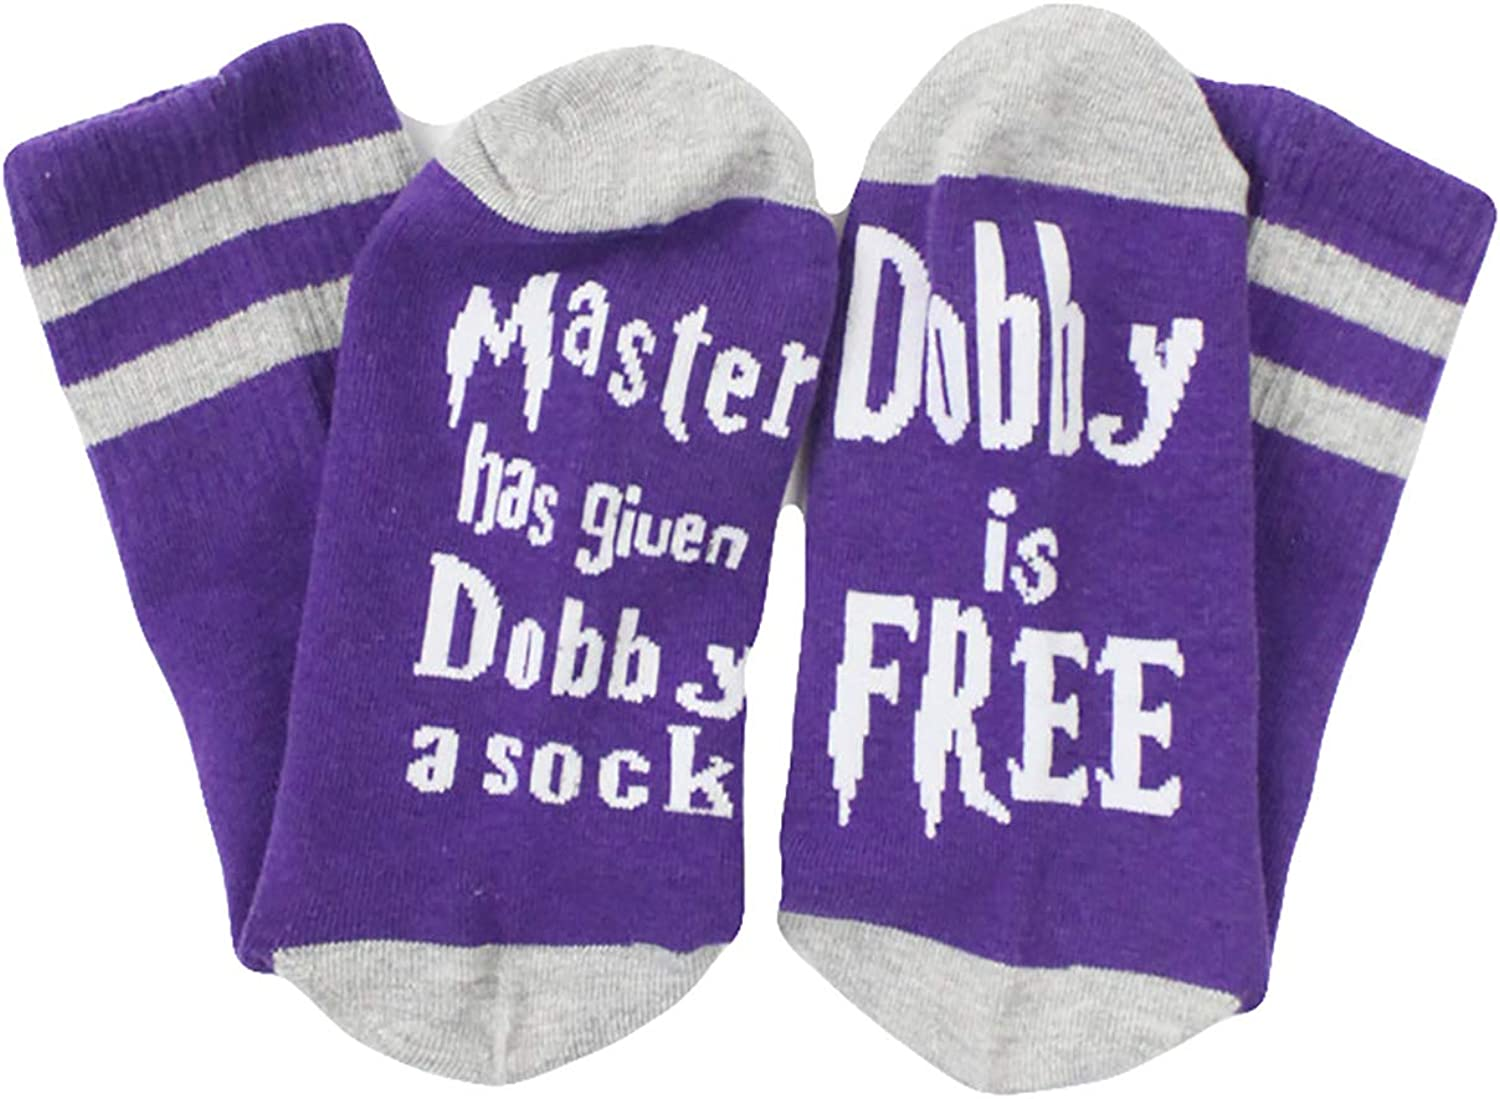 Super-cheap Master Has Giuen Dobby a Socks is 2021 autumn and winter new Sock Novelty Free